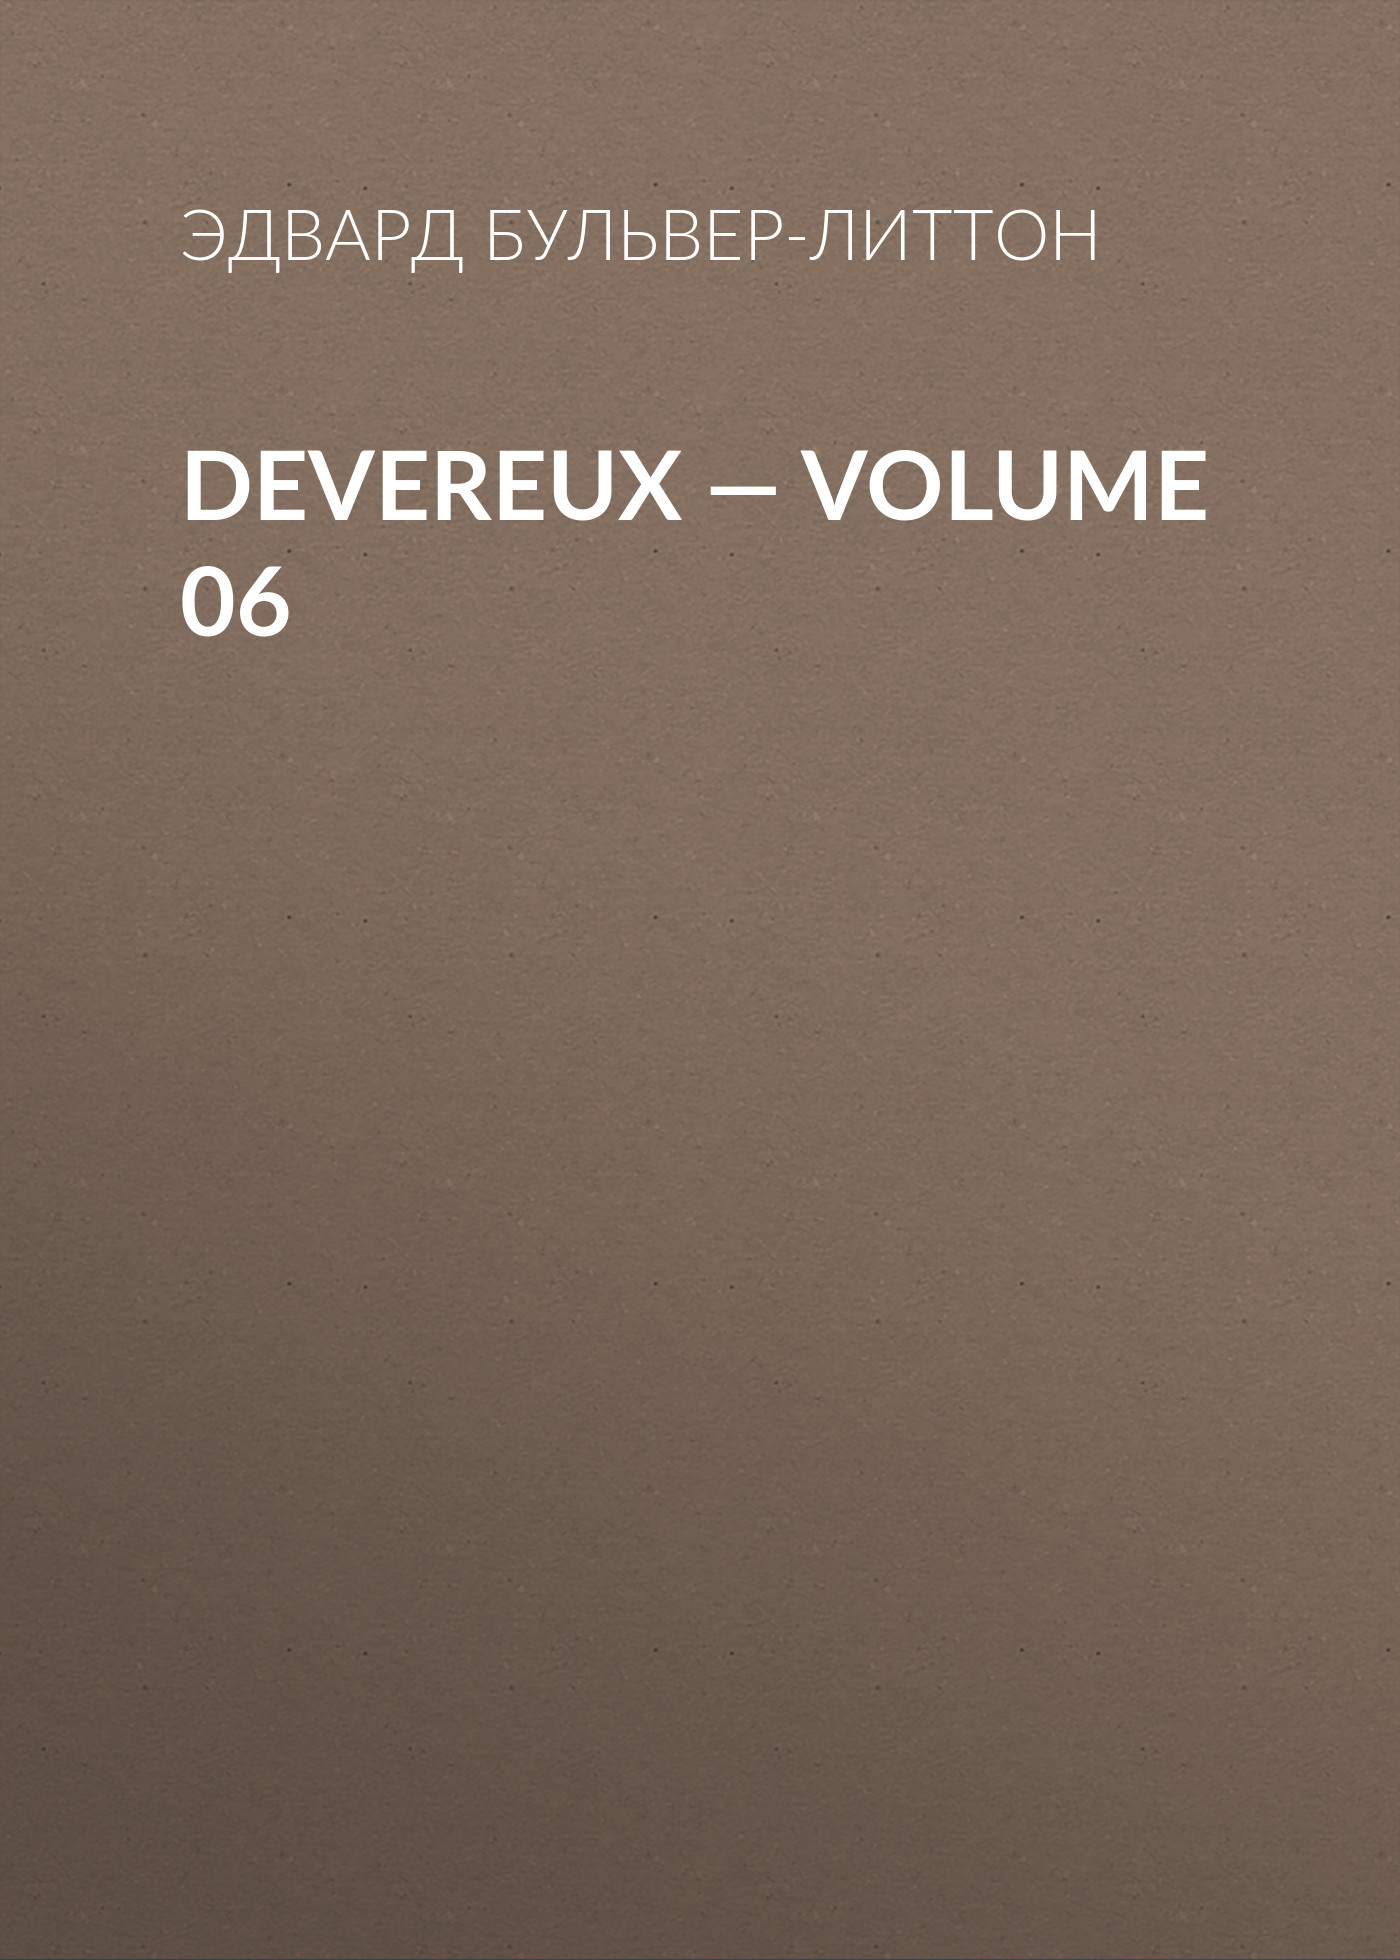 Эдвард Бульвер-Литтон Devereux — Volume 06 эдвард бульвер литтон devereux volume 01